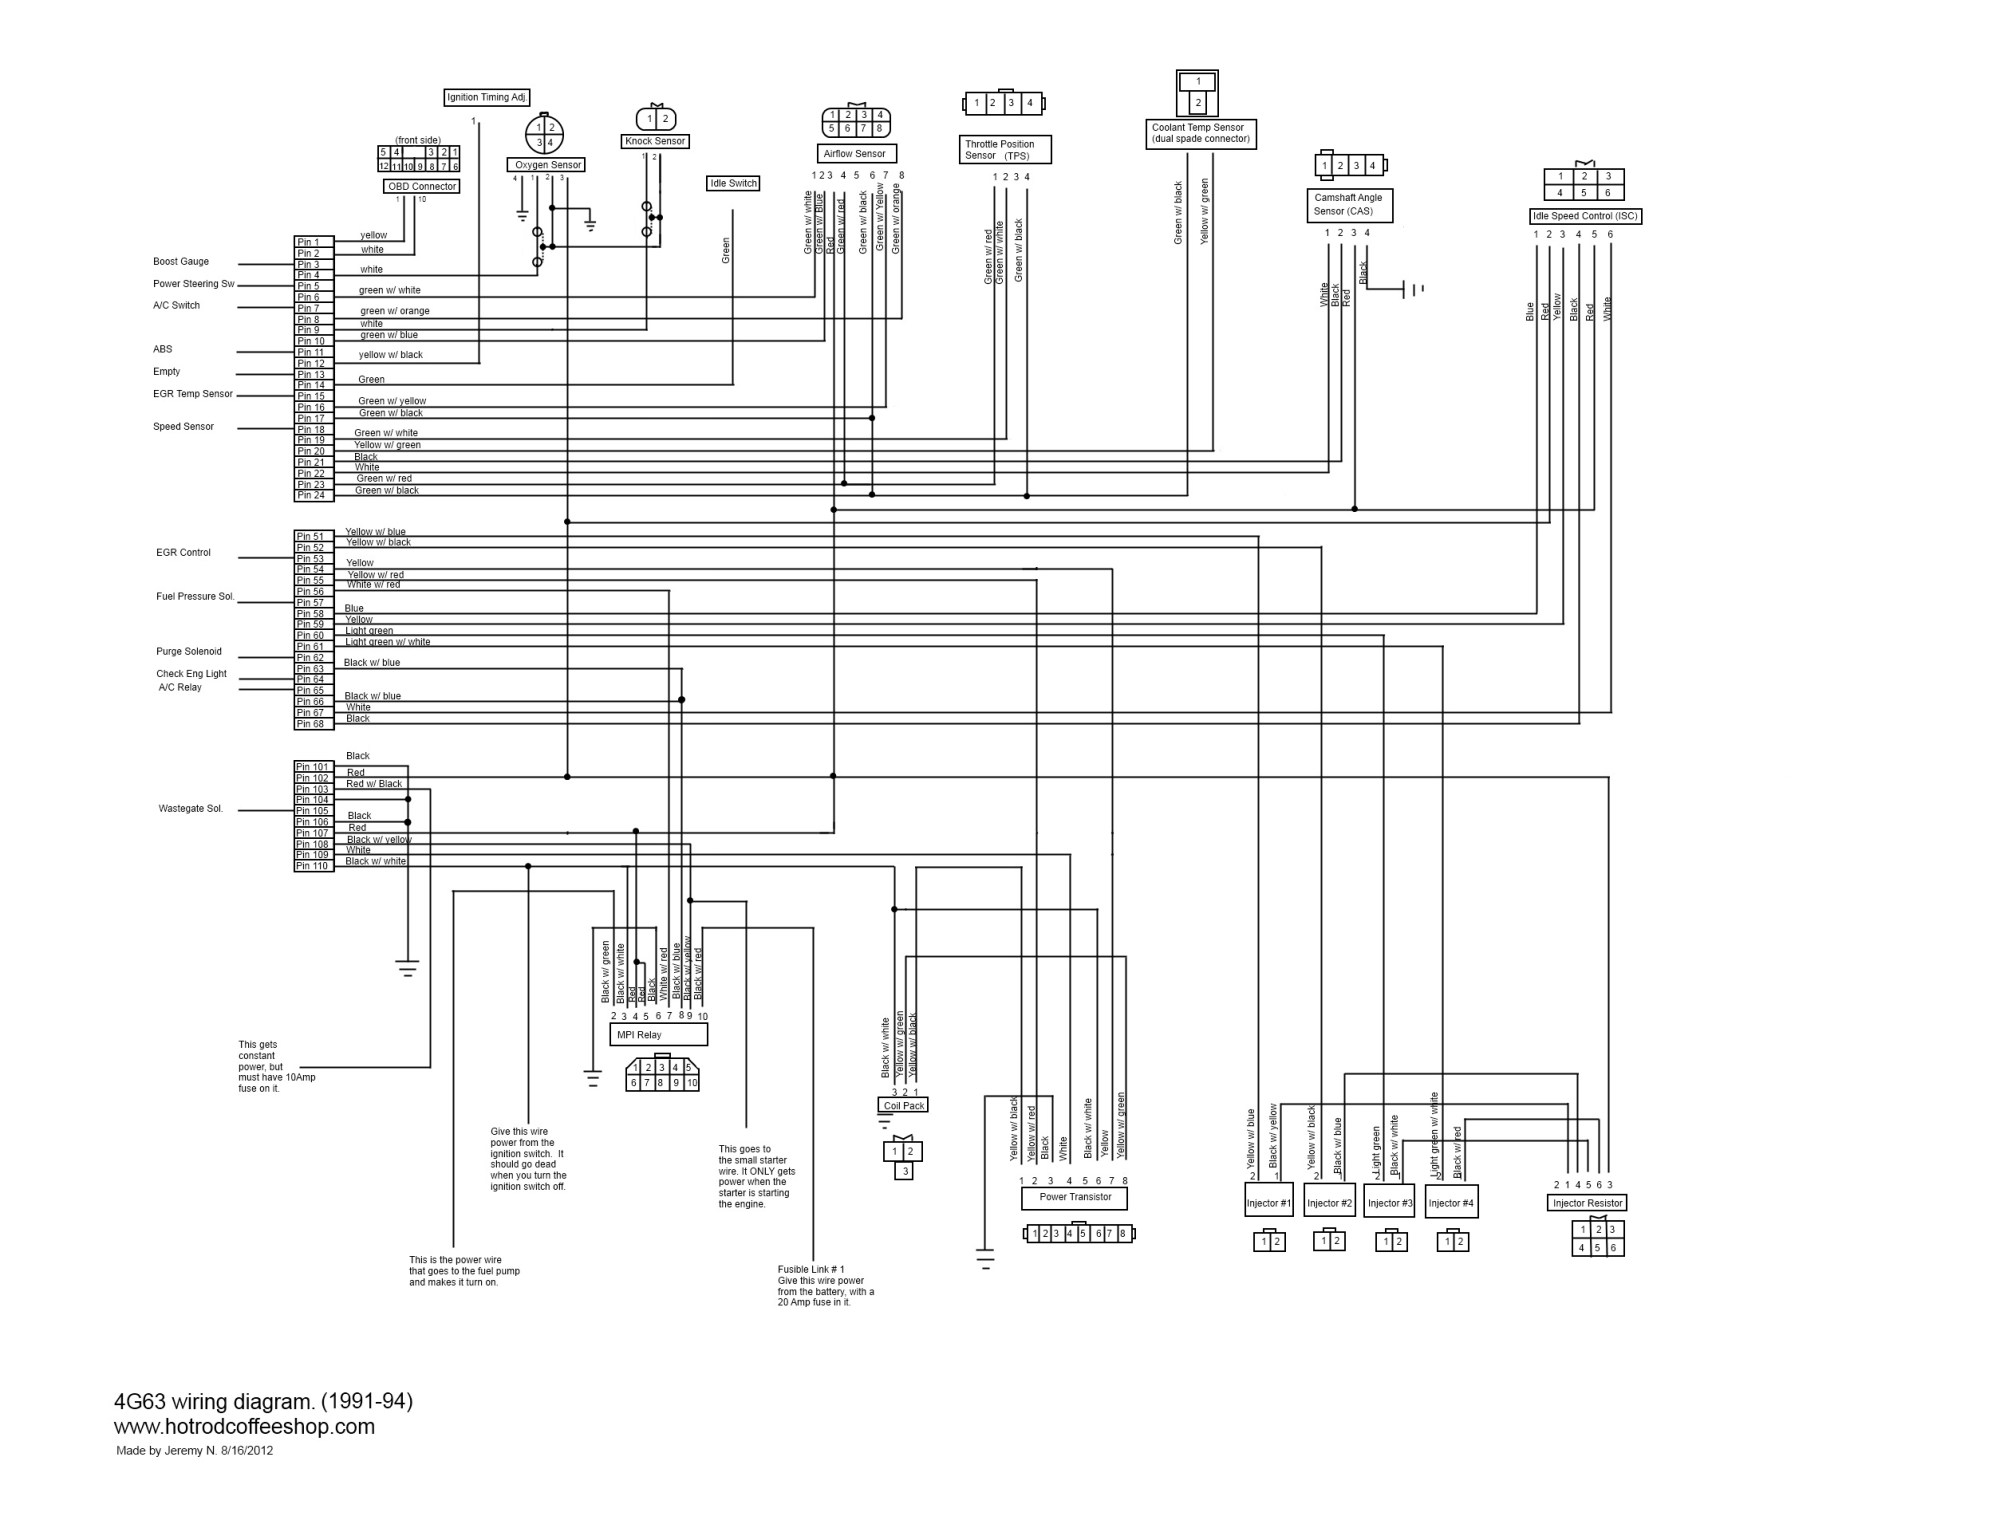 hight resolution of 4g63t engine diagram hotrodcoffeeshop com toyota engine diagram 1991 94 dsm 4g63 wiring diagram